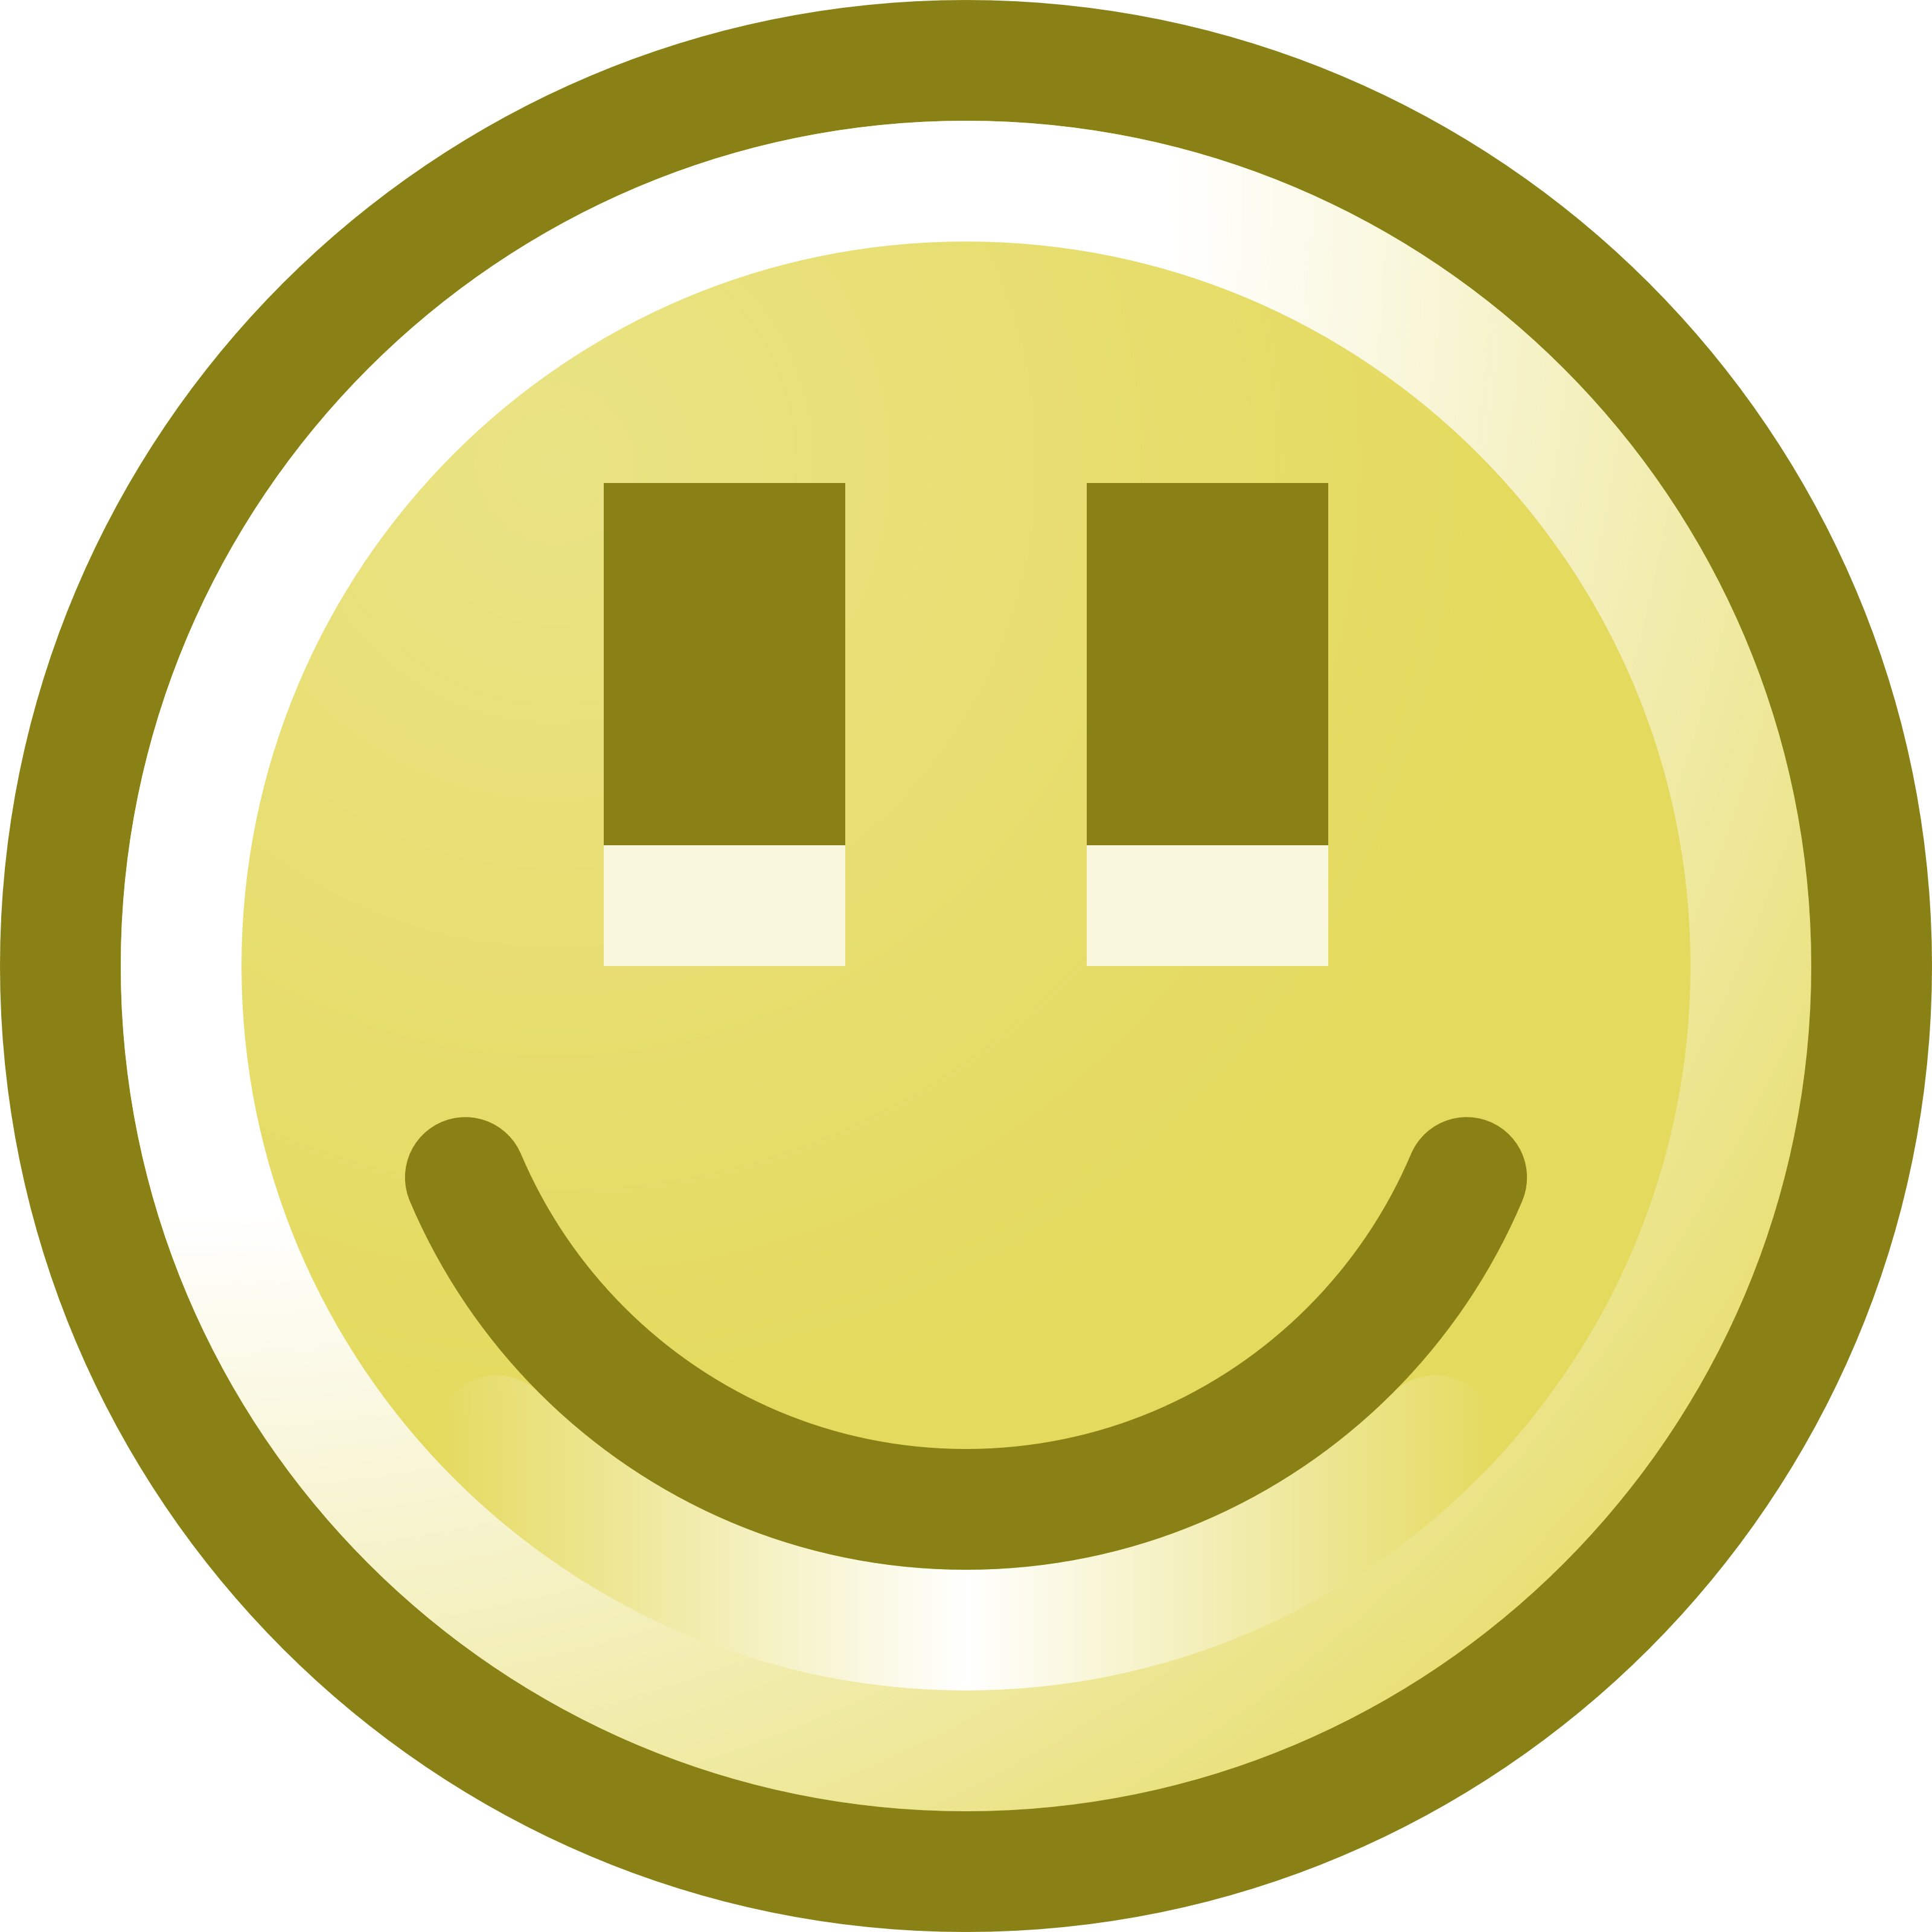 3200x3200 Smiley Face Clip Art Thumbs Up Free Clipart Image